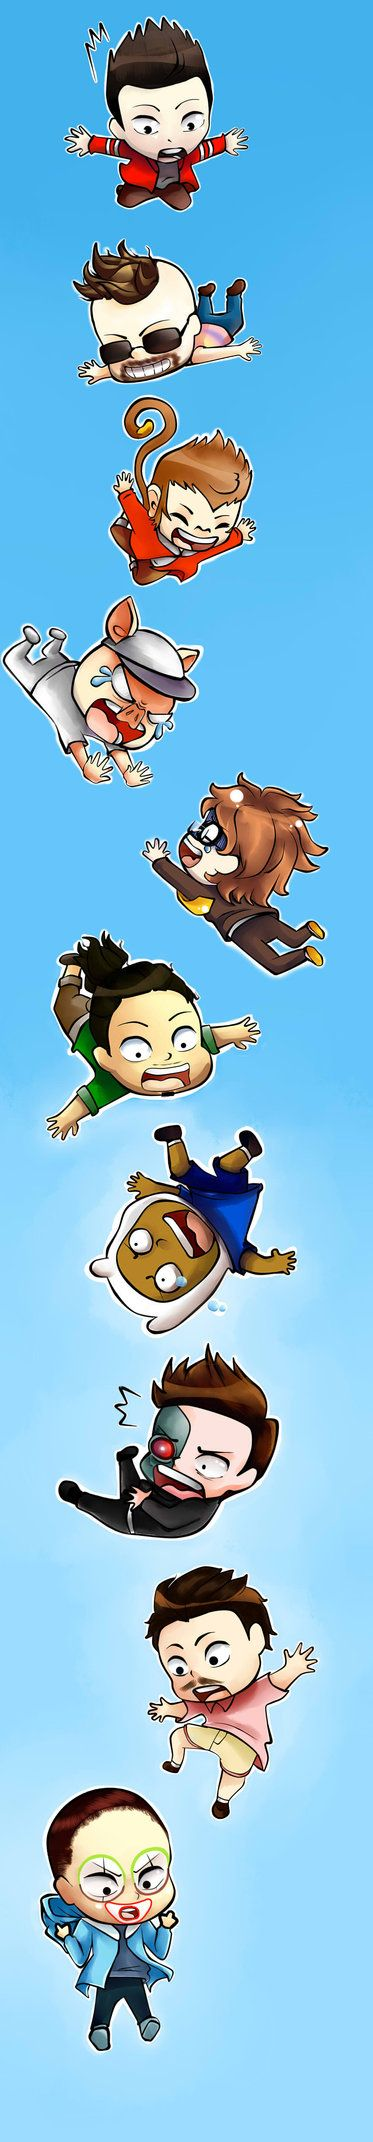 THE EPIC SKY DIVING by AikonX.deviantart.com on @DeviantArt - In order - Vanoss, Moo, Lui, Wildcat, Mini, Nogla, Marcel, Terroriser, Droid and Delirious.